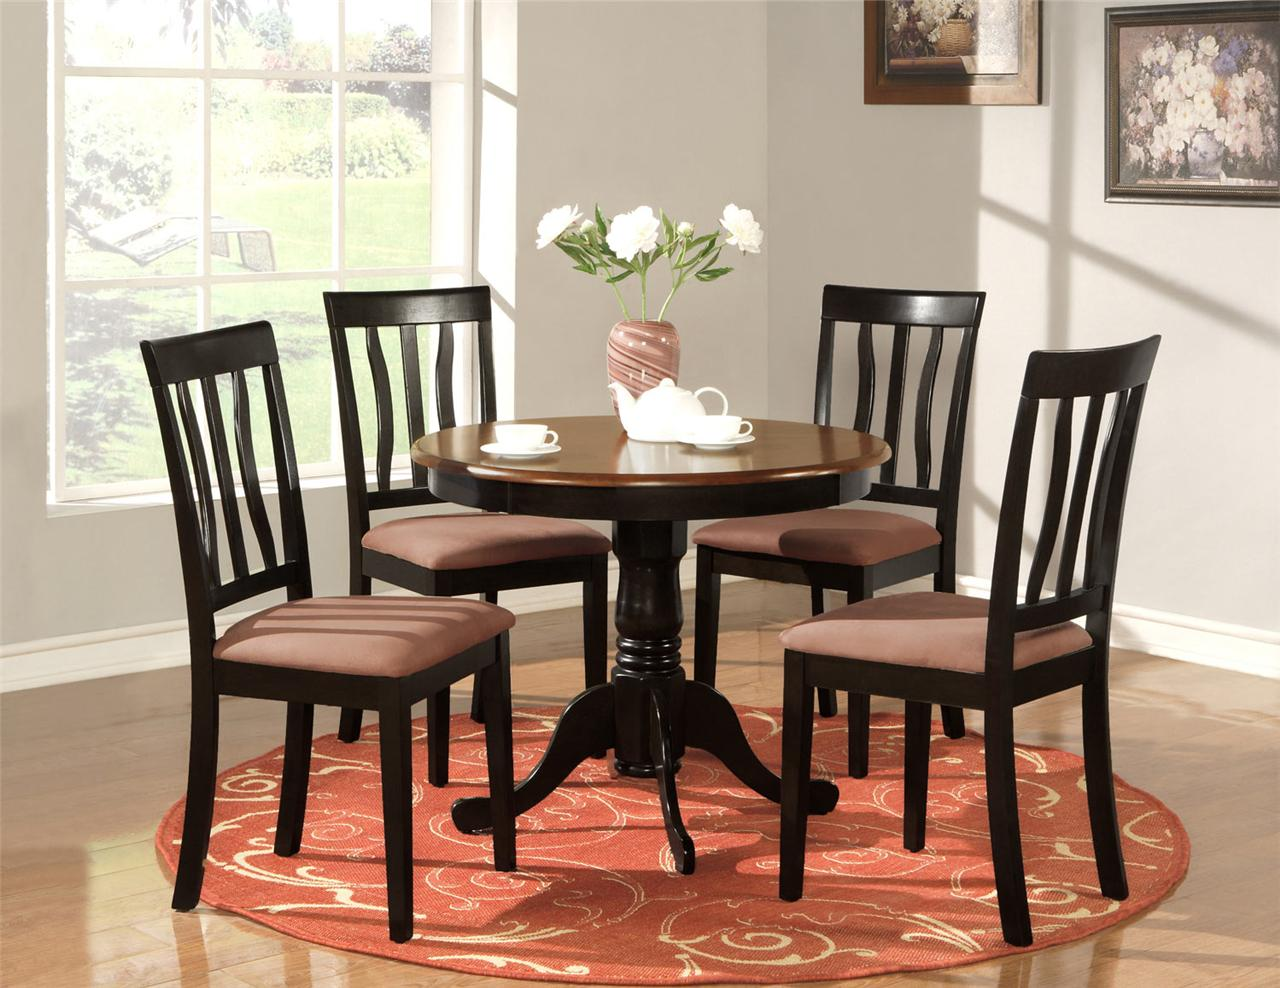 Details about 5 PC ROUND TABLE DINETTE KITCHEN TABLE & 4 CHAIRS OAK